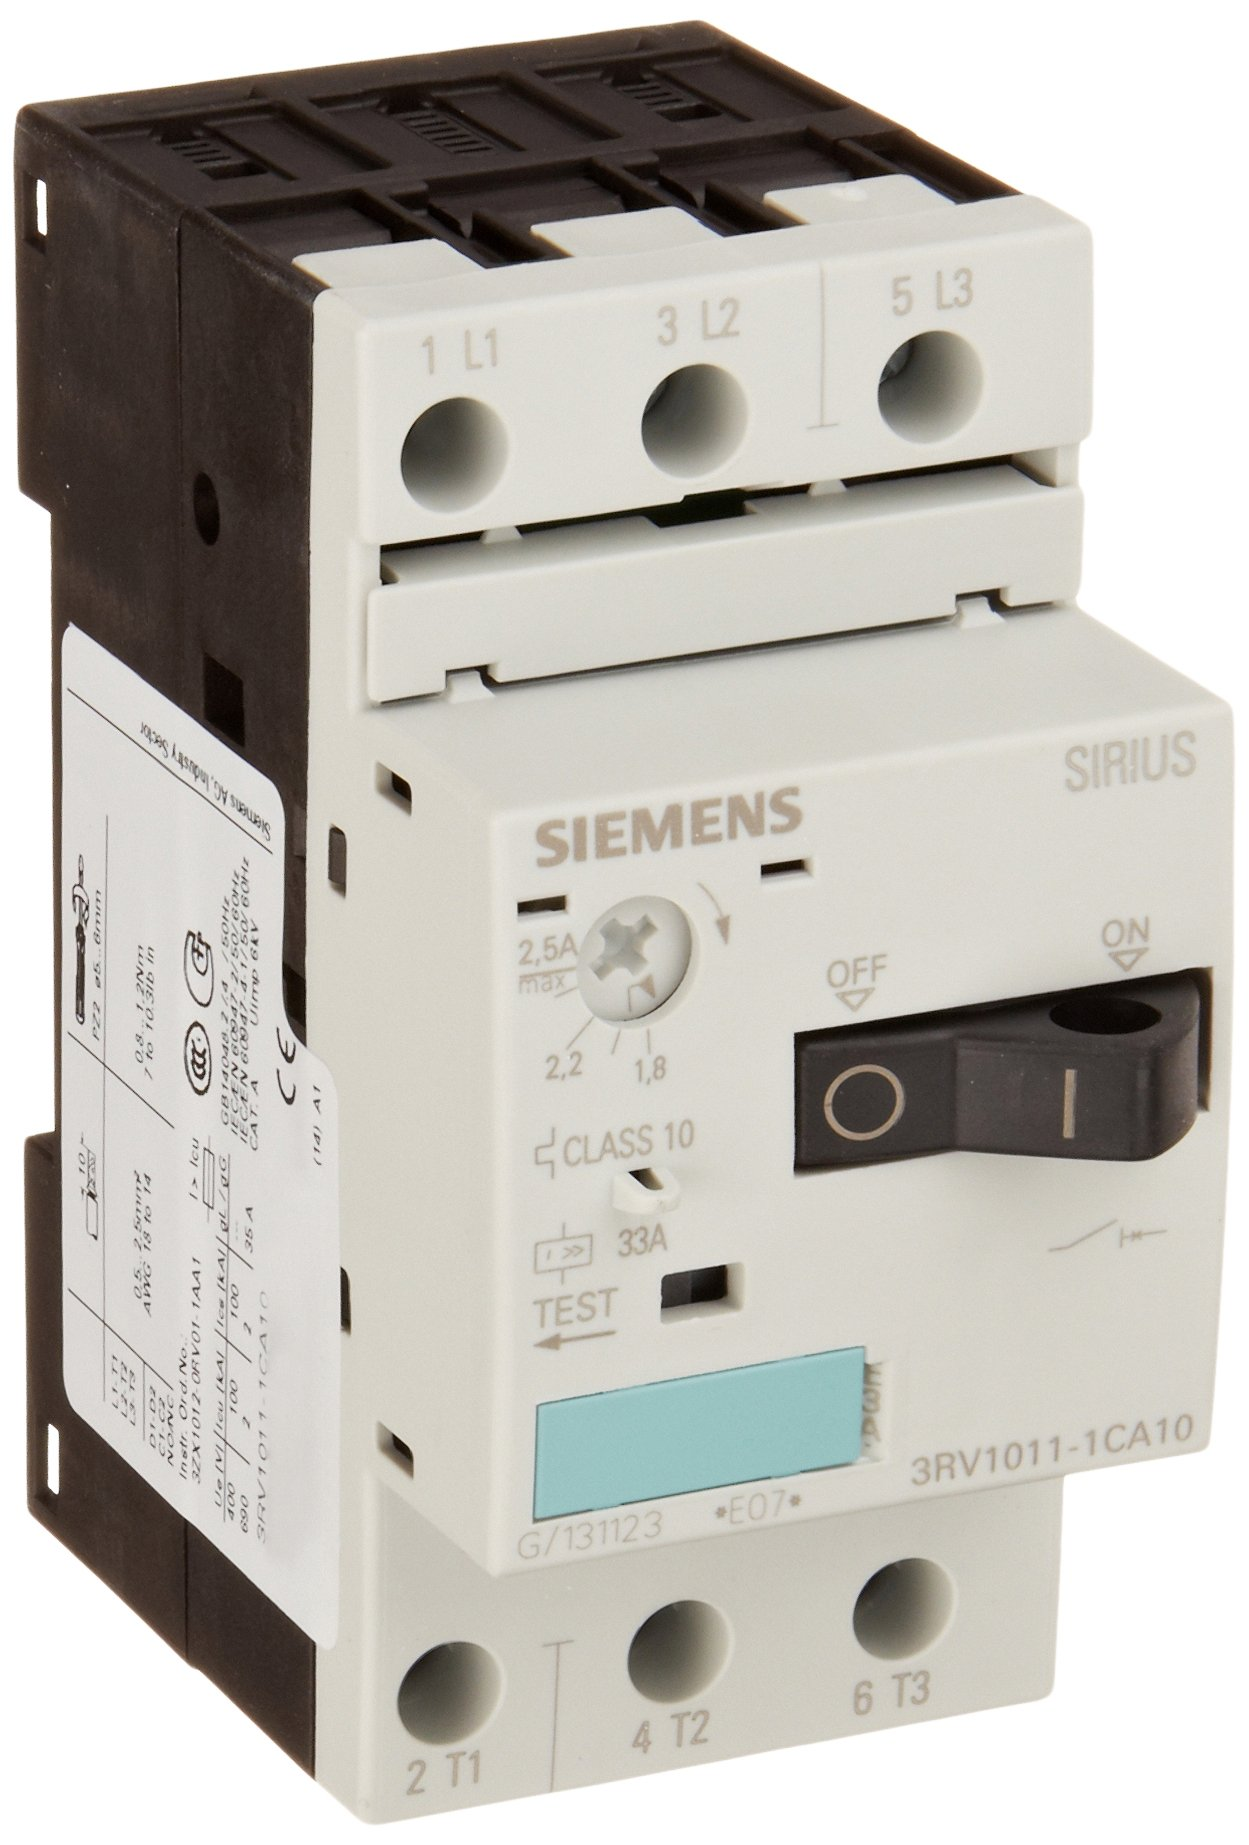 Siemens 3RV1011-1CA10 Motor Starter Protector, Screw Connection, 3RV101 Frame Size, 1.8-2.5 FLA Adjustment Range, 33A Instantaneous Short Circuit Release, 65kA UL Short Circuit Breaking Capacity at 480V